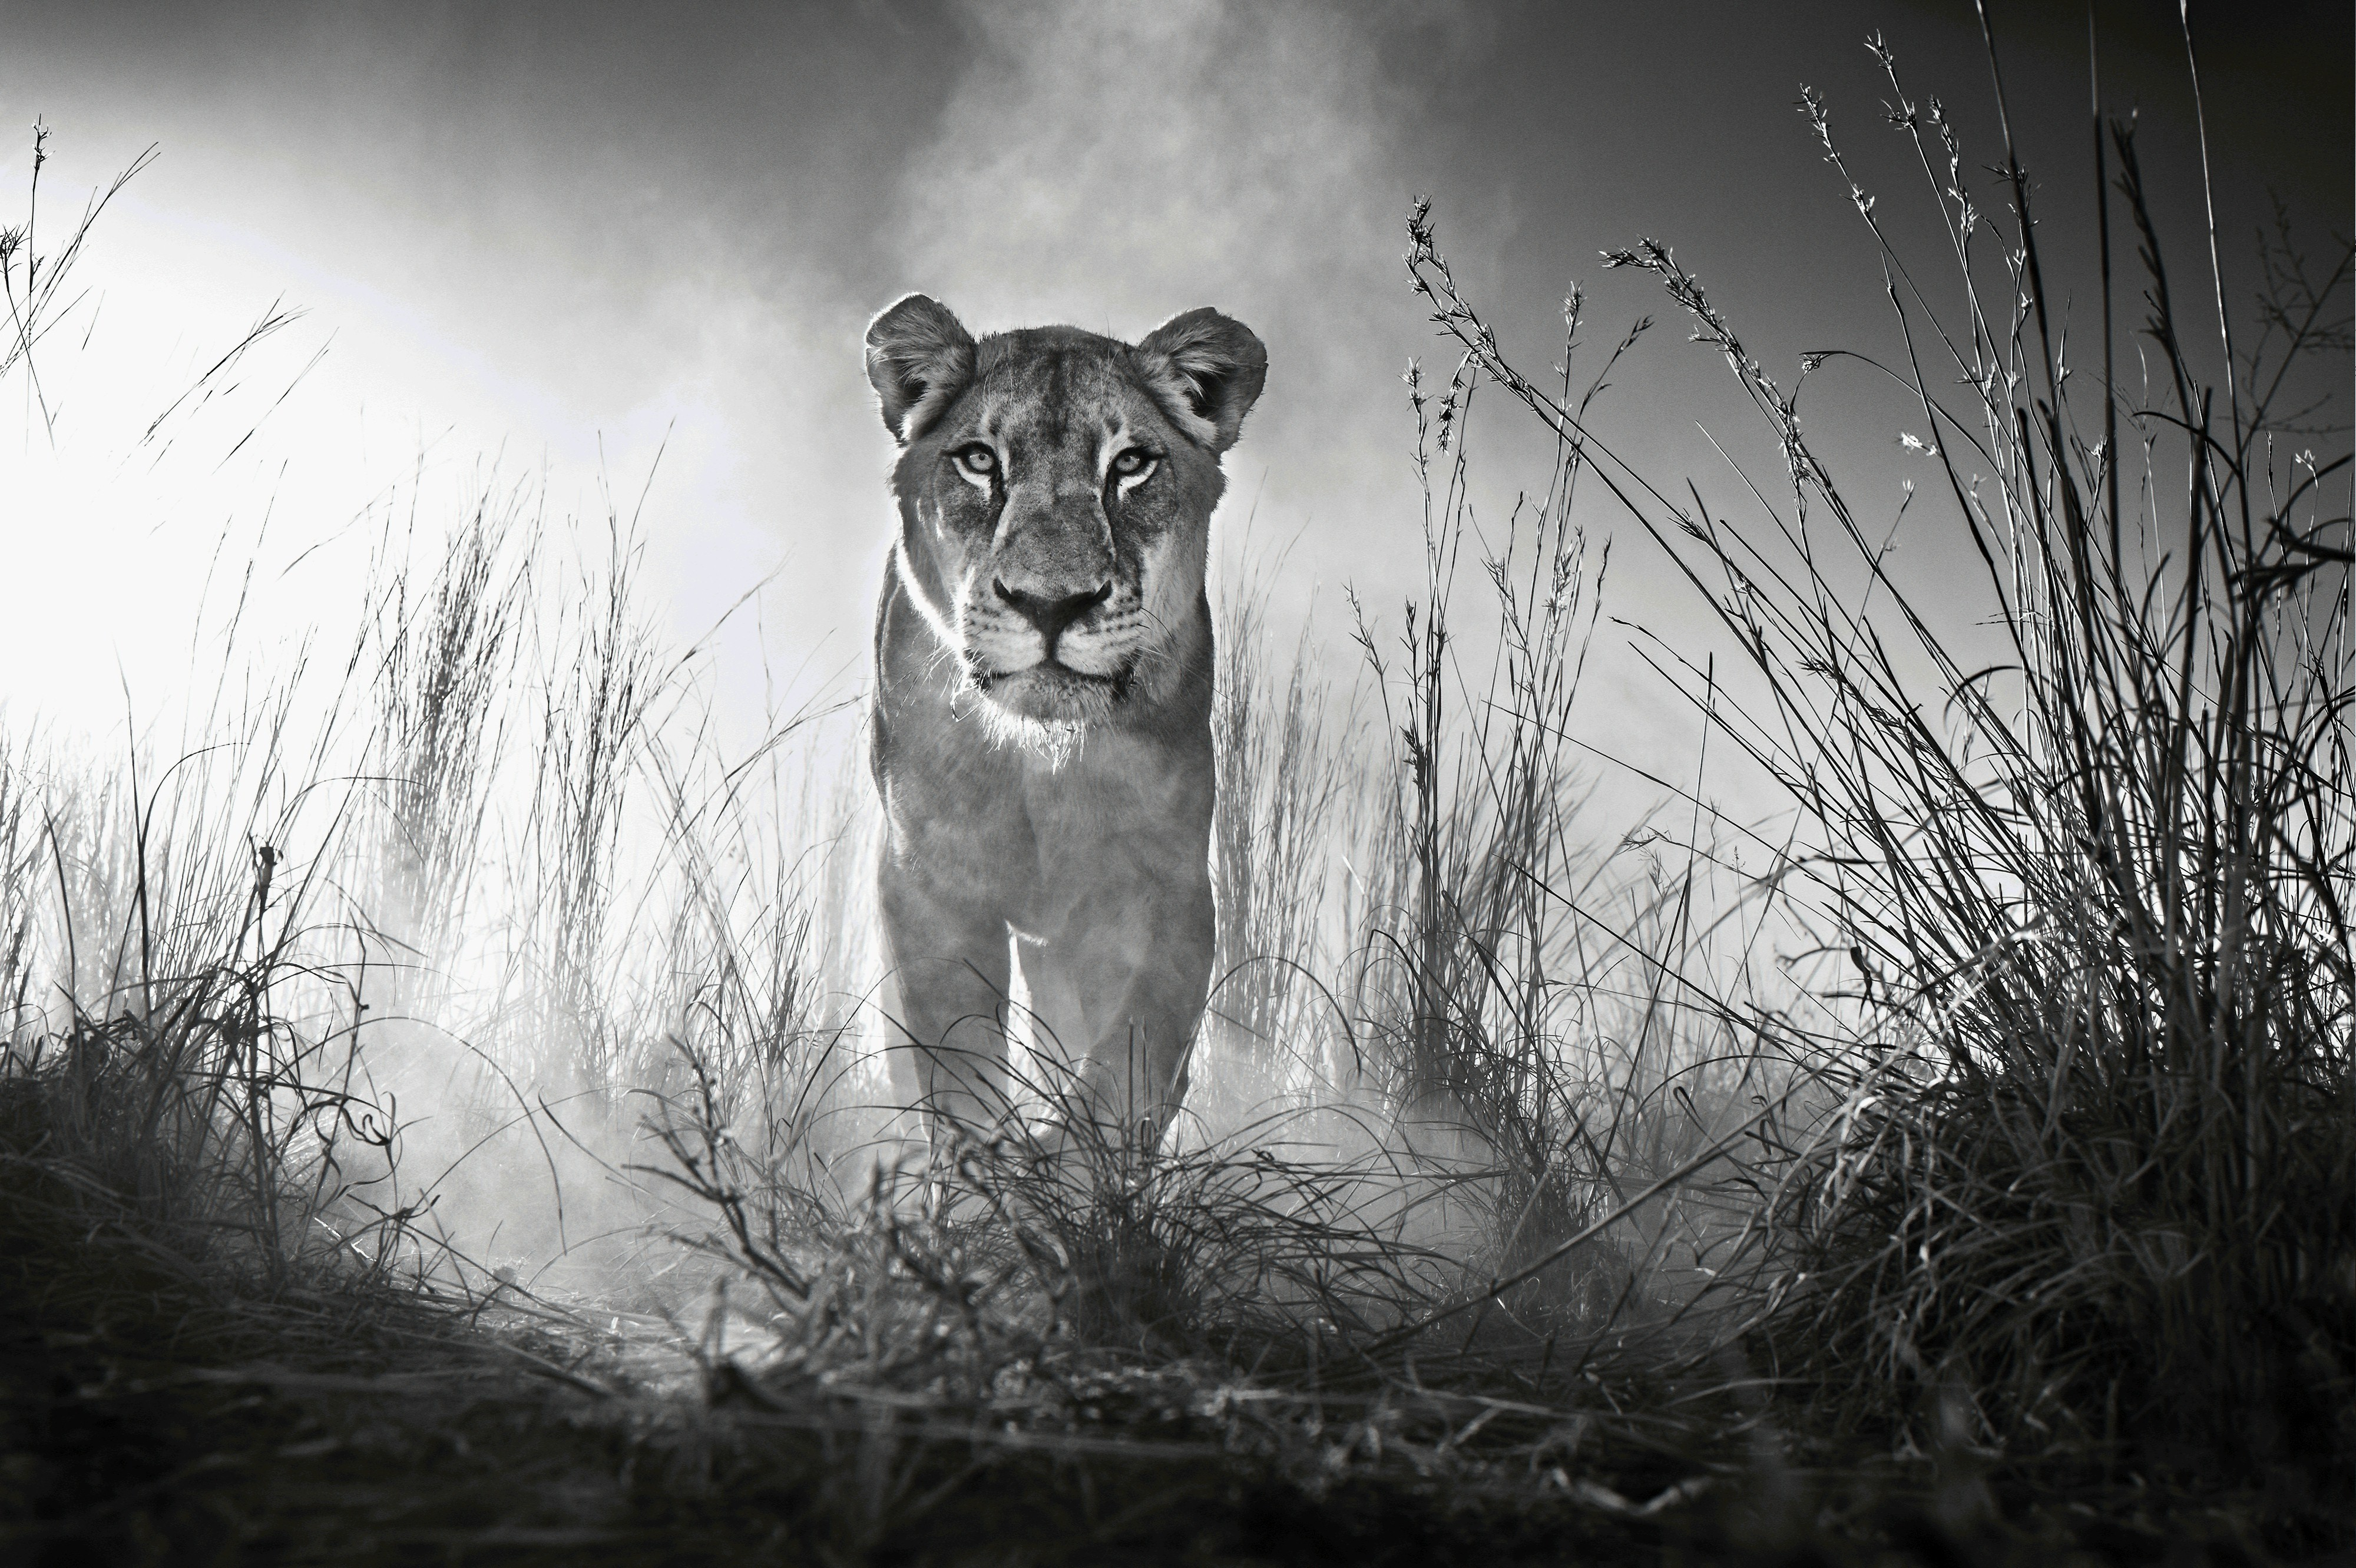 3840x2400 Lion Black And White 4k 3840x2400 Resolution Wallpaper Hd Animals 4k Wallpapers Images Photos And Background